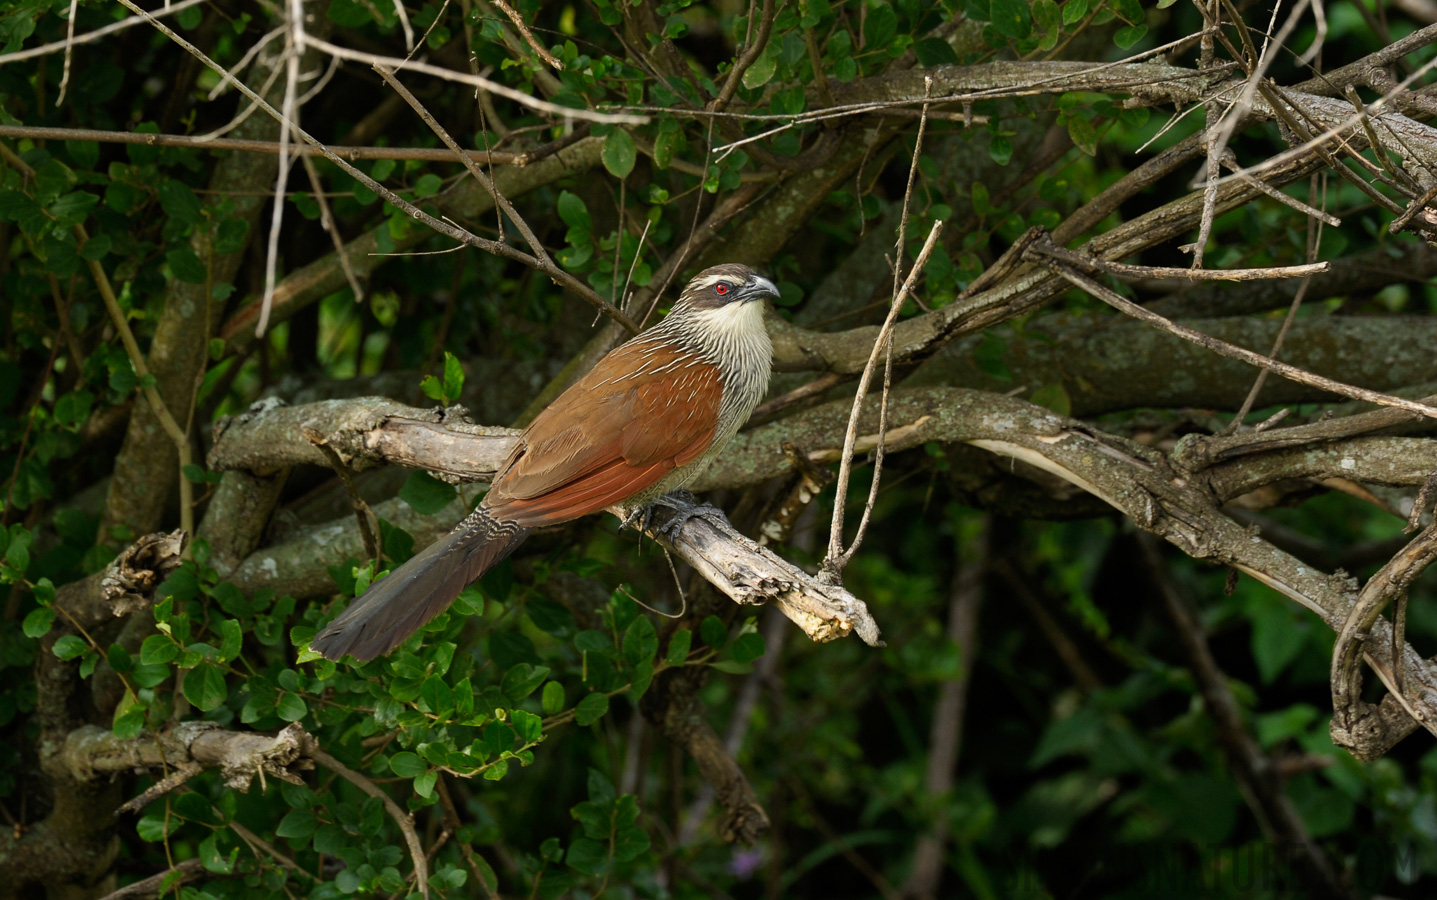 White-browed Coucal [Centropus superciliosus]